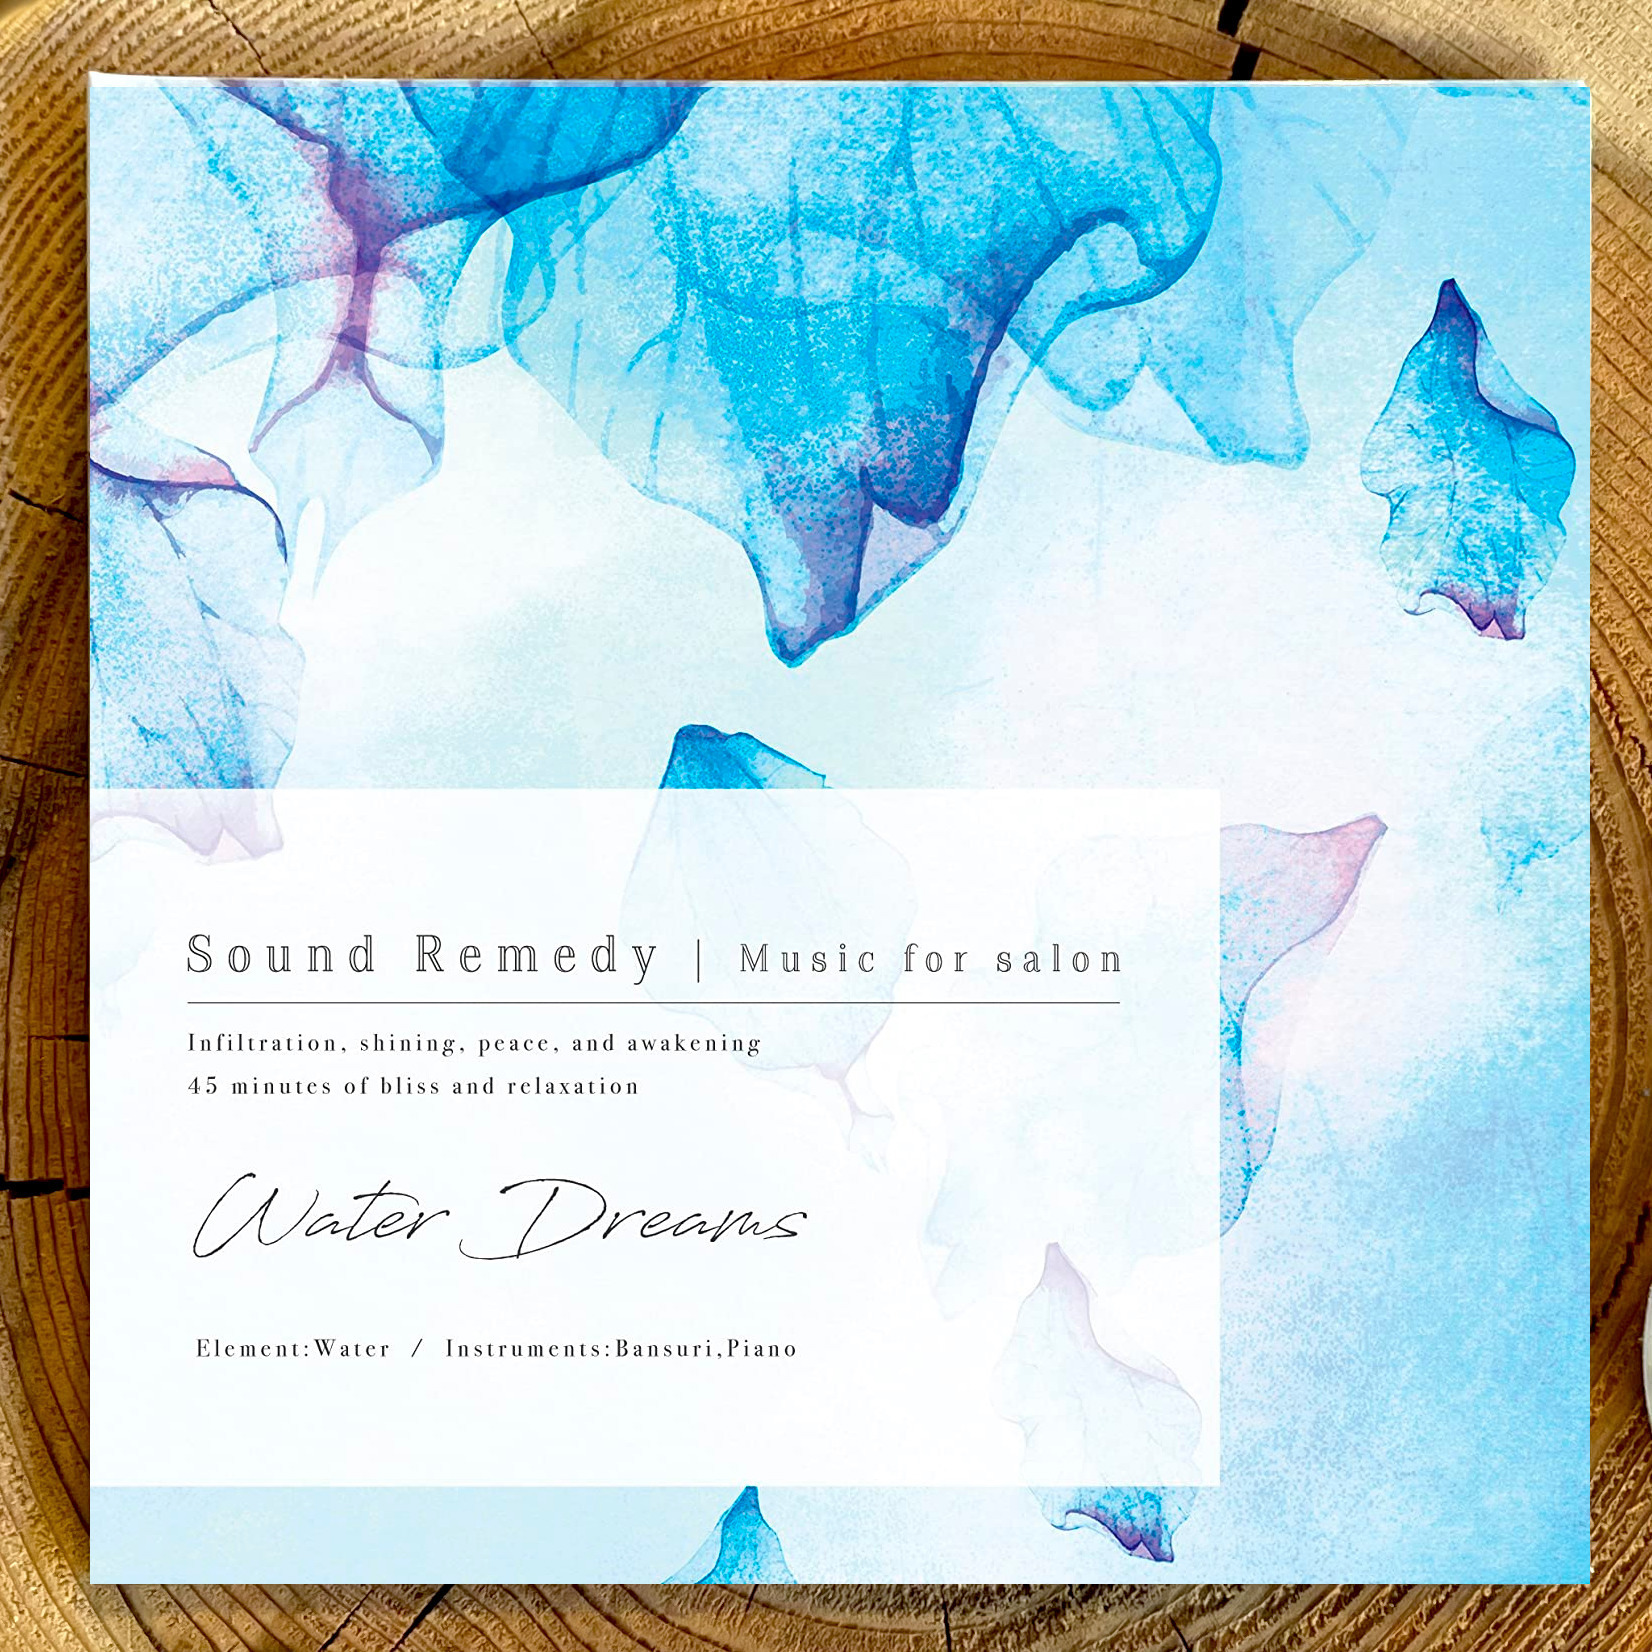 Sound Remedy ~Music for salon~ / Water Dreams(CD)